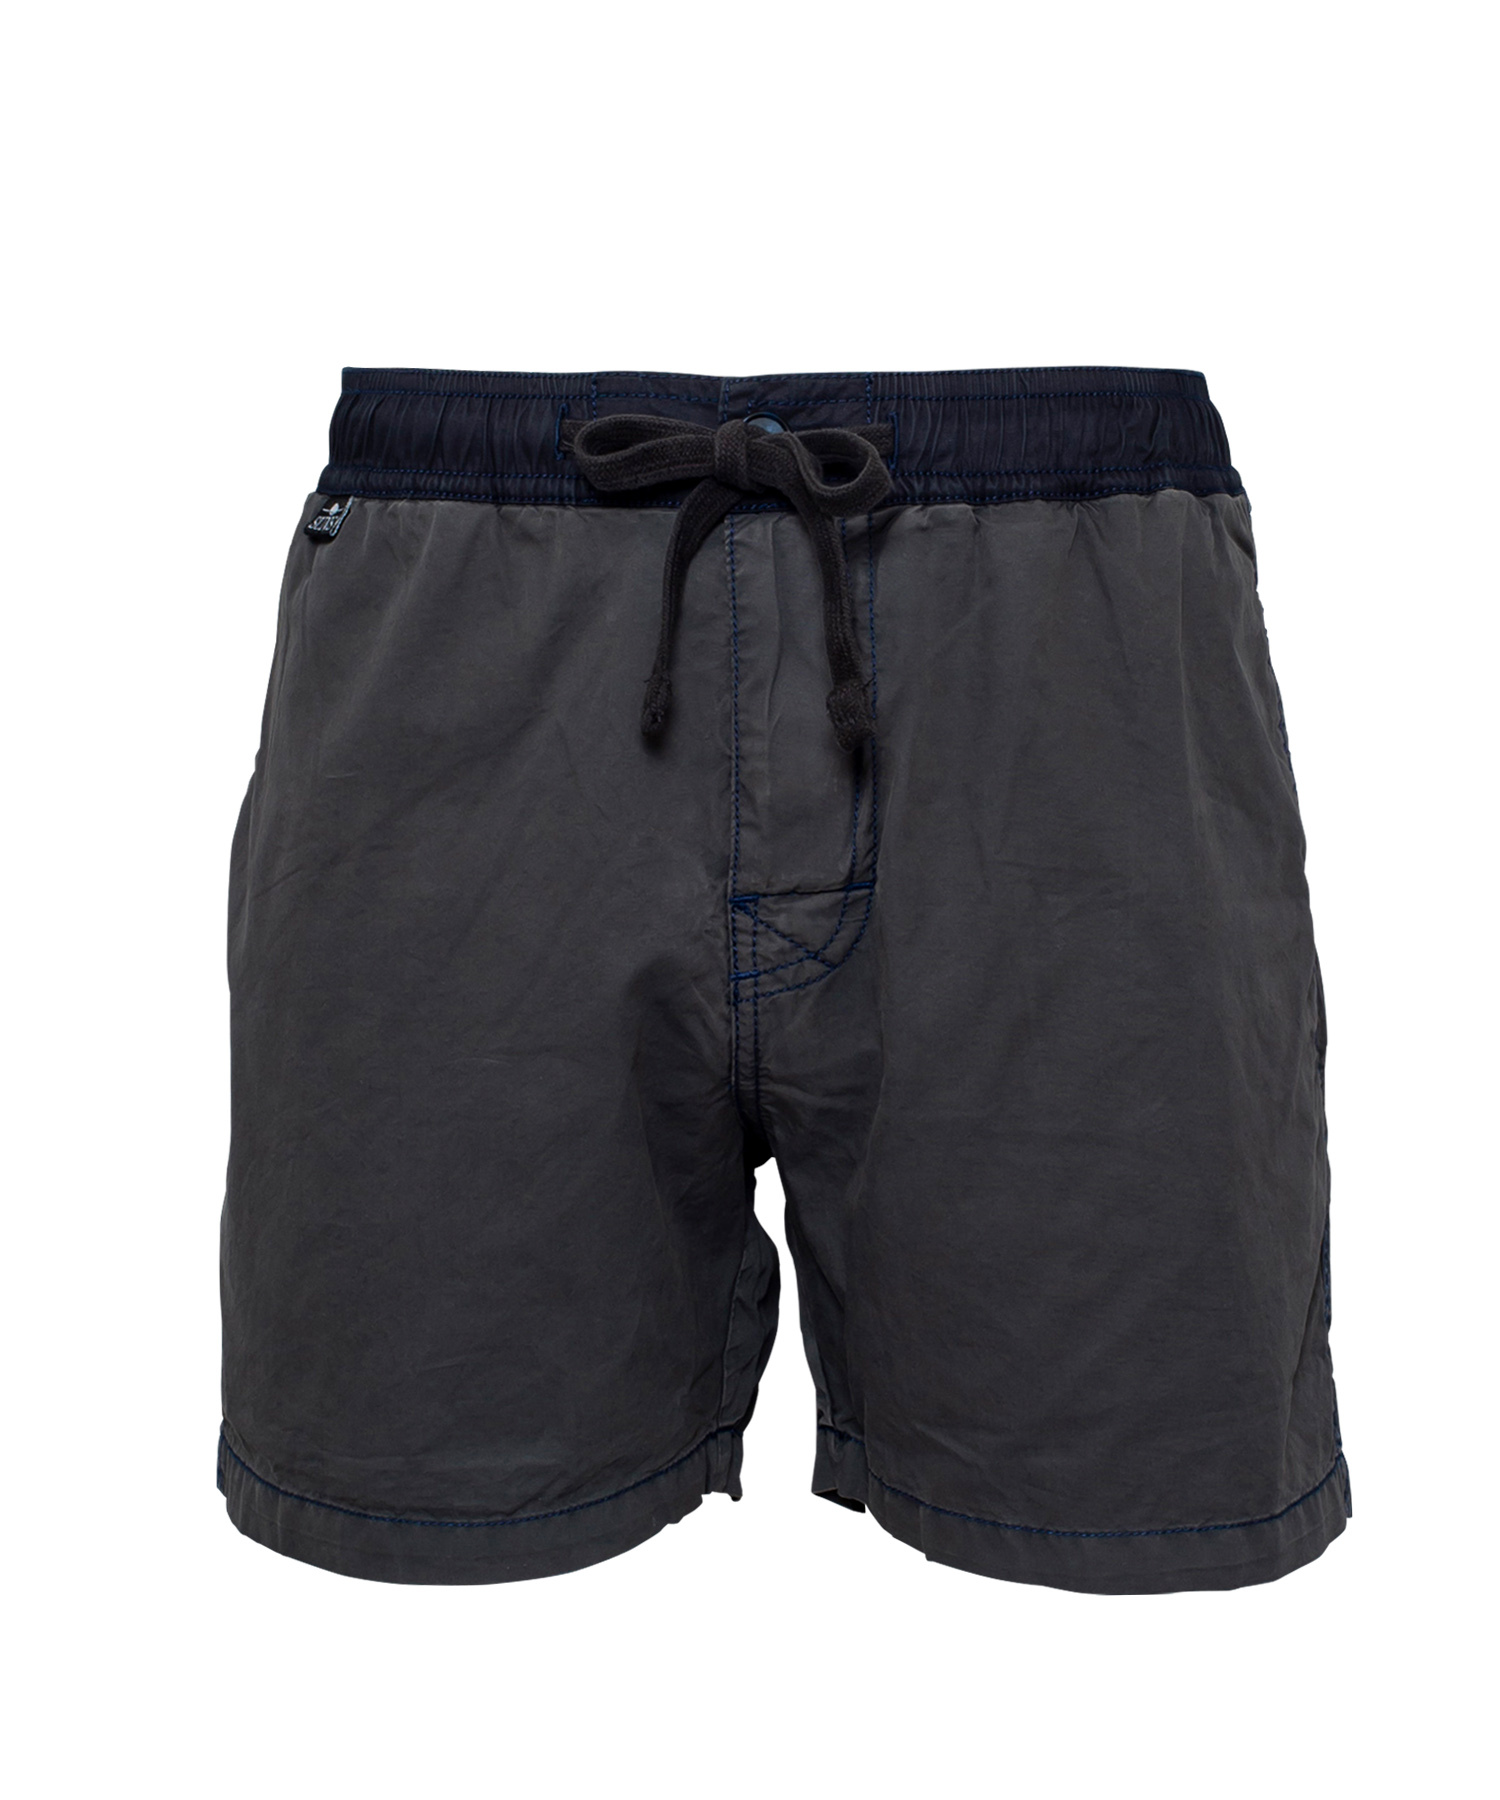 SUNS VINTAGE WASHED SWIM SHORTS[RSW004]